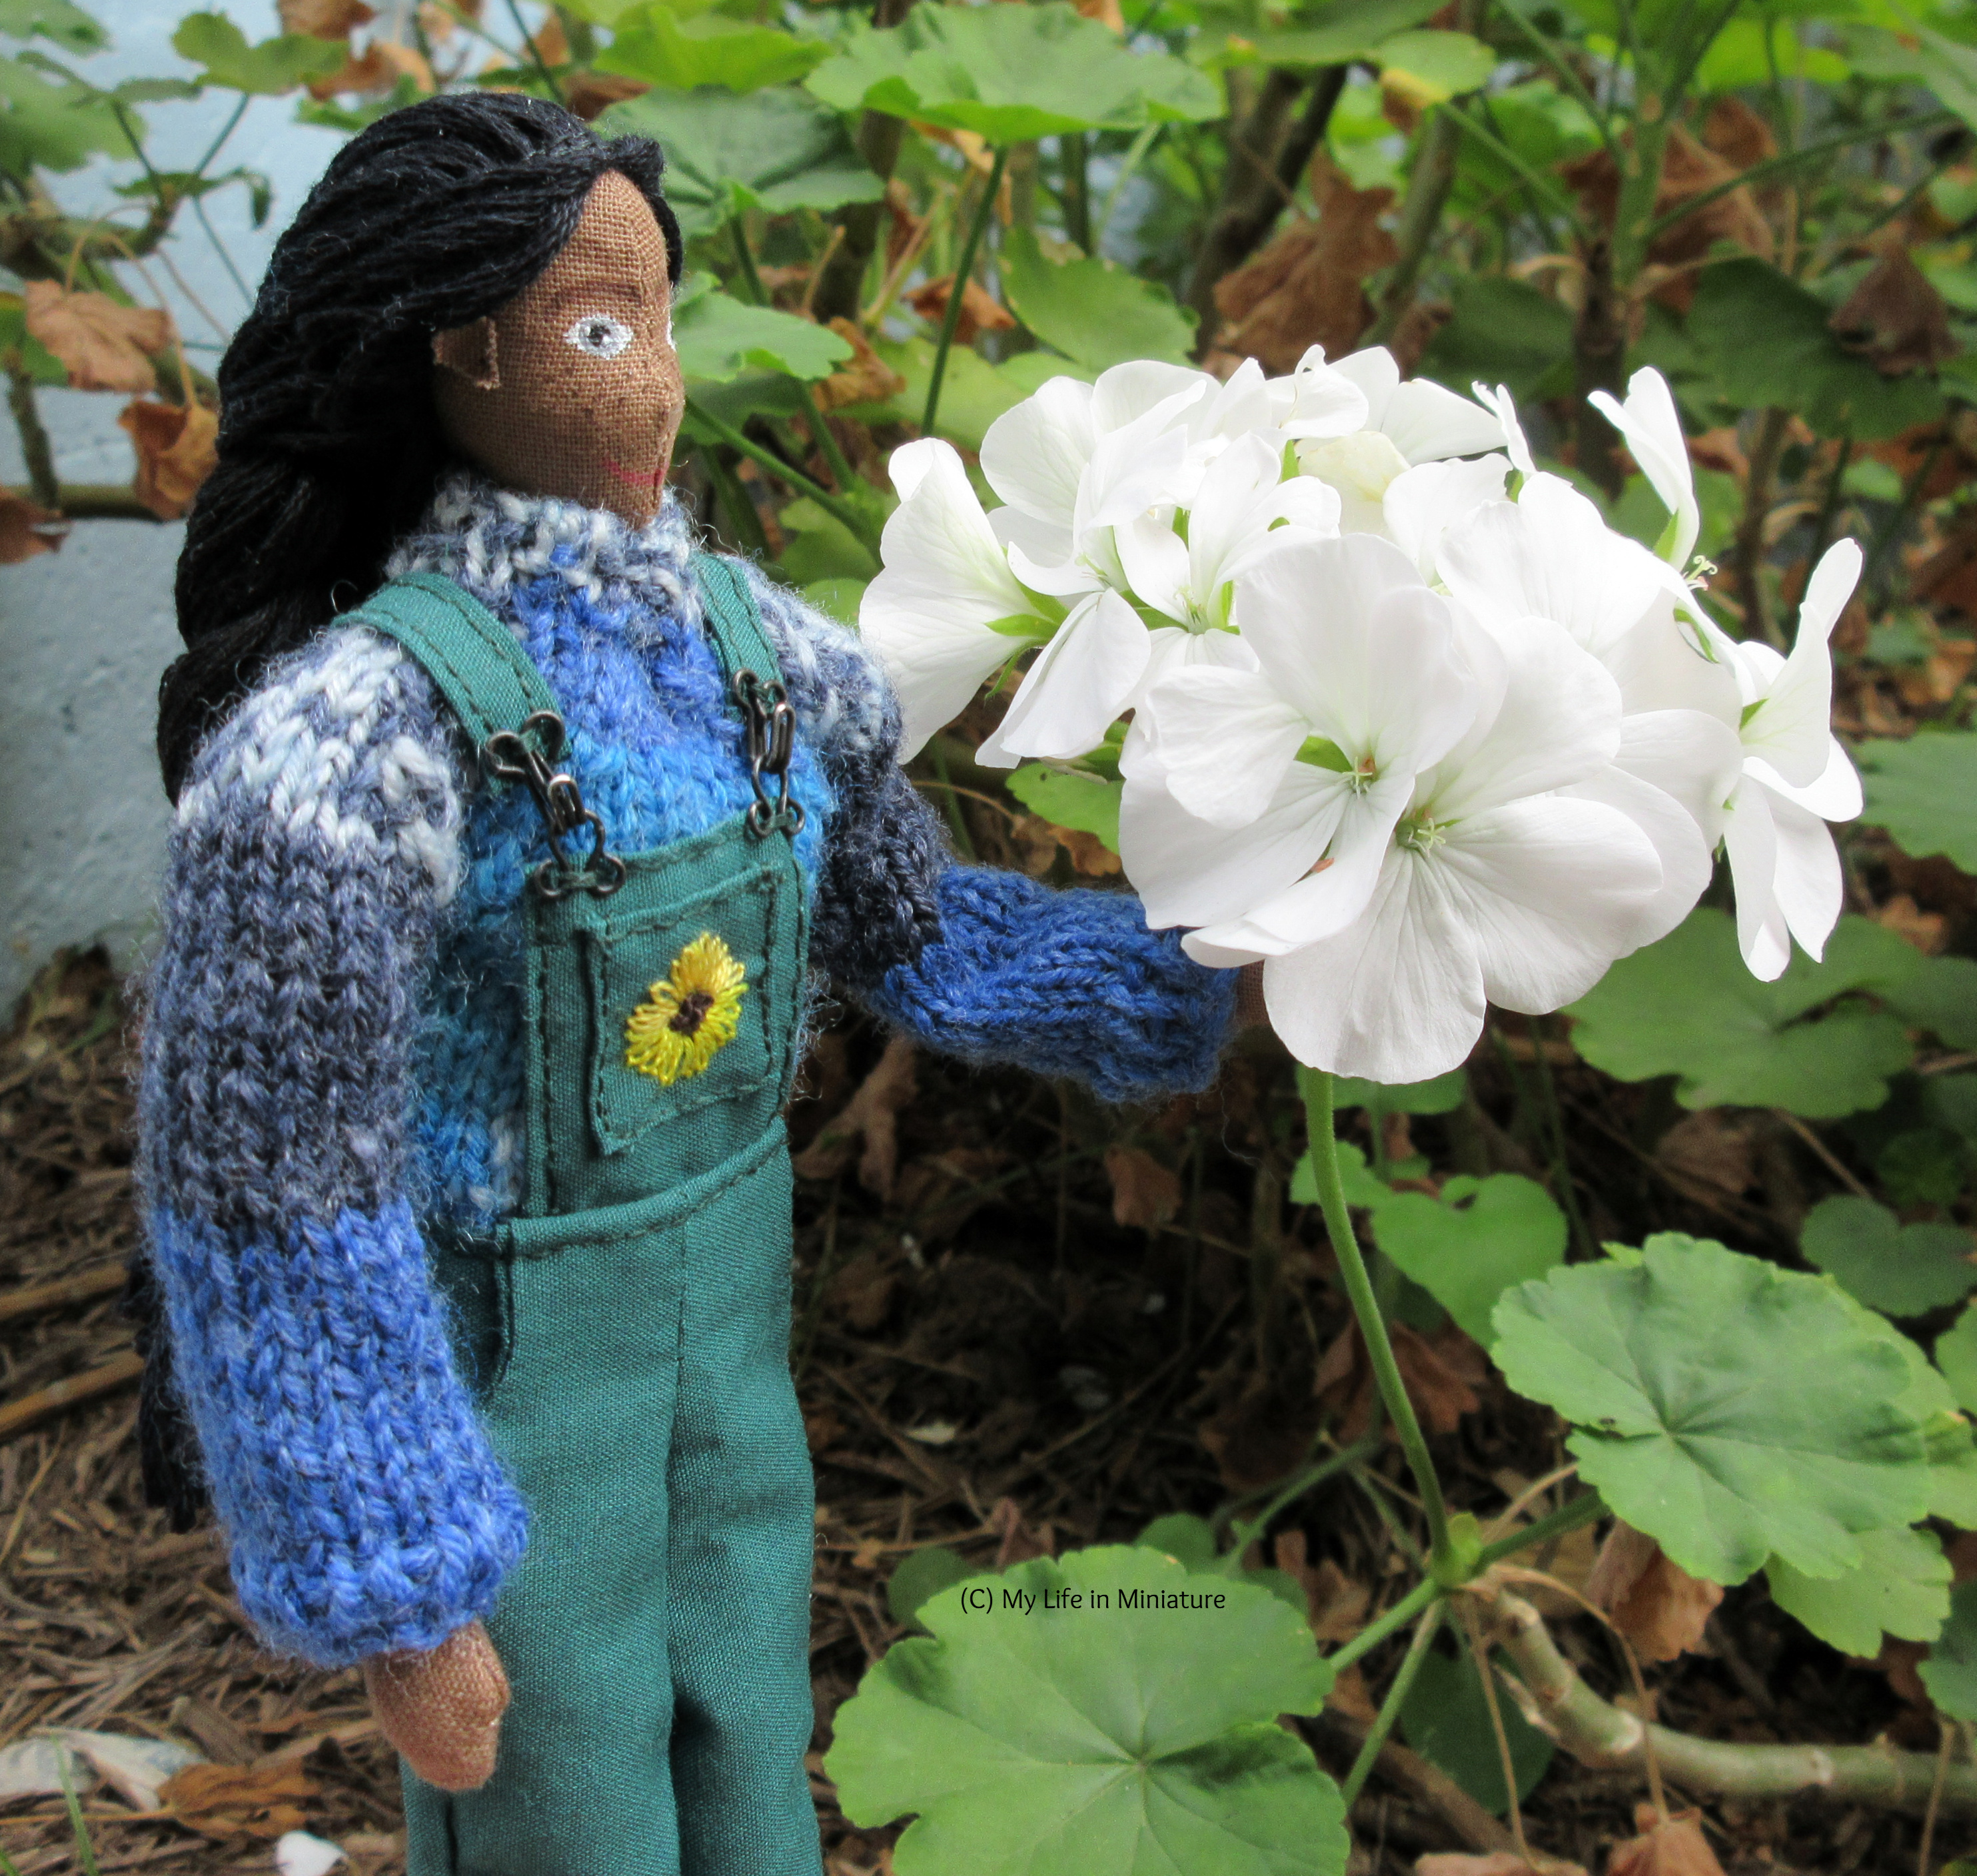 Petra stands next to a large white geranium flower, one hand on the stem. She's looking at it, wearing the green dungarees and blue jumper.